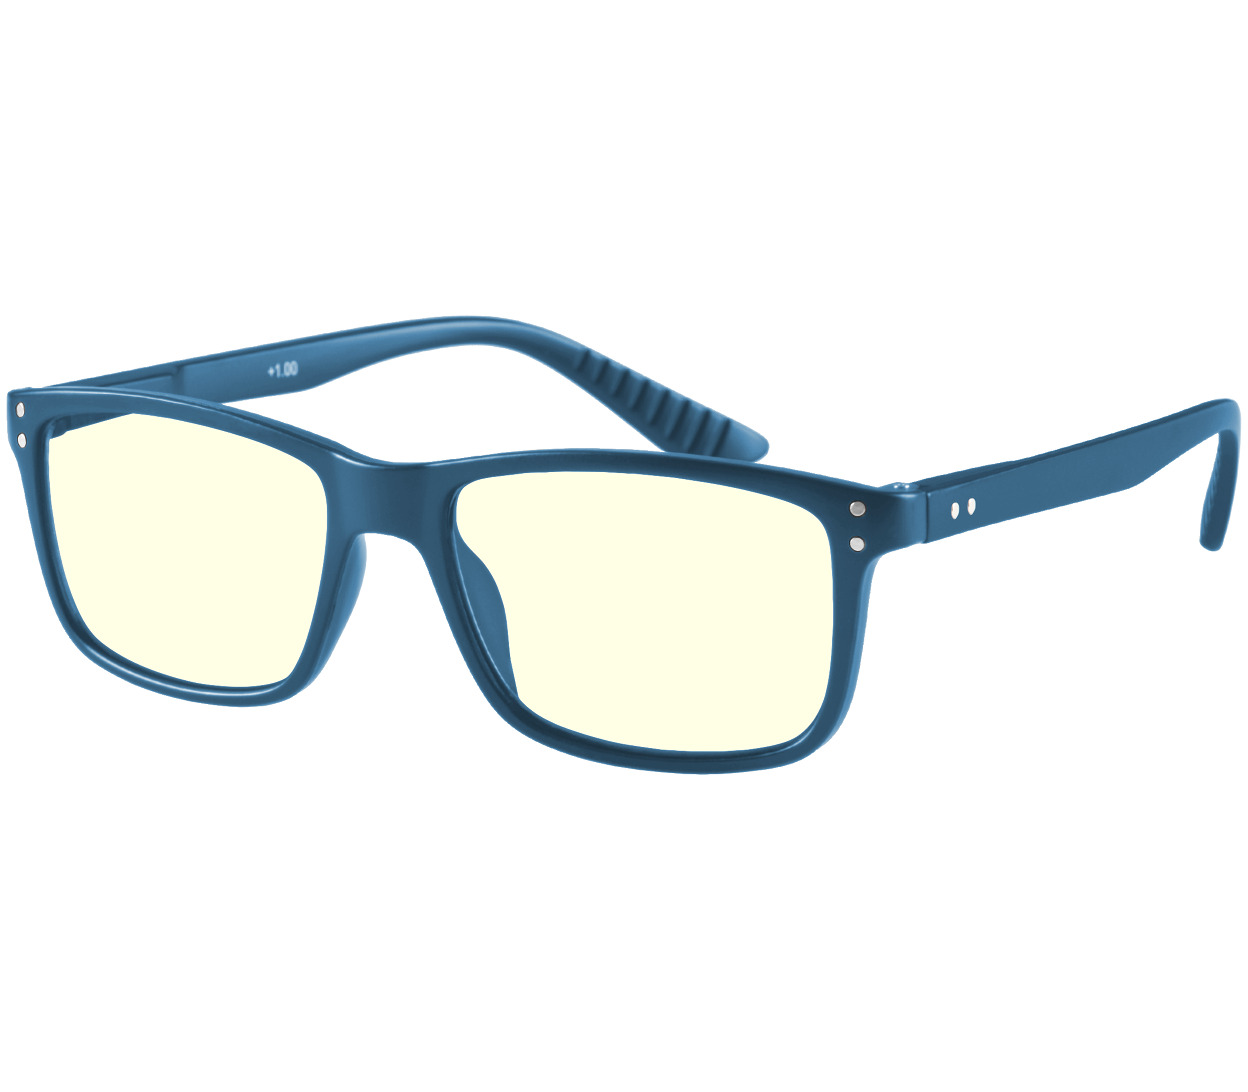 Main Image (Angle) - Austin (Blue) Computer Glasses Reading Glasses